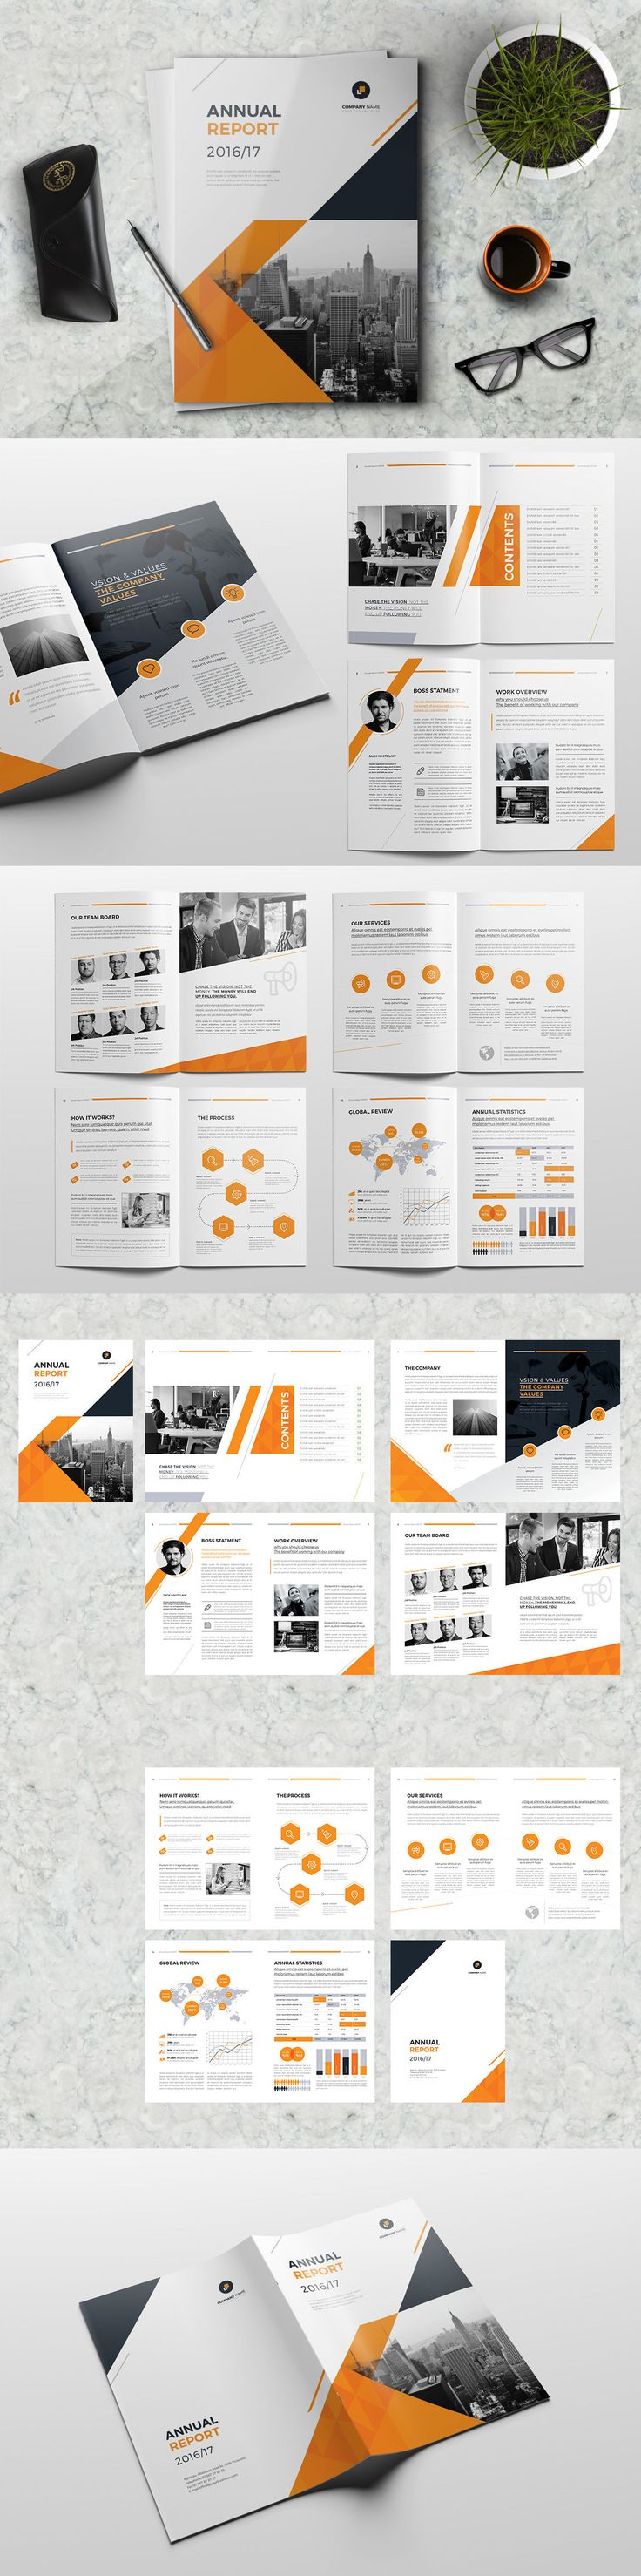 Best Images About Annual Report On   UxUi Designer